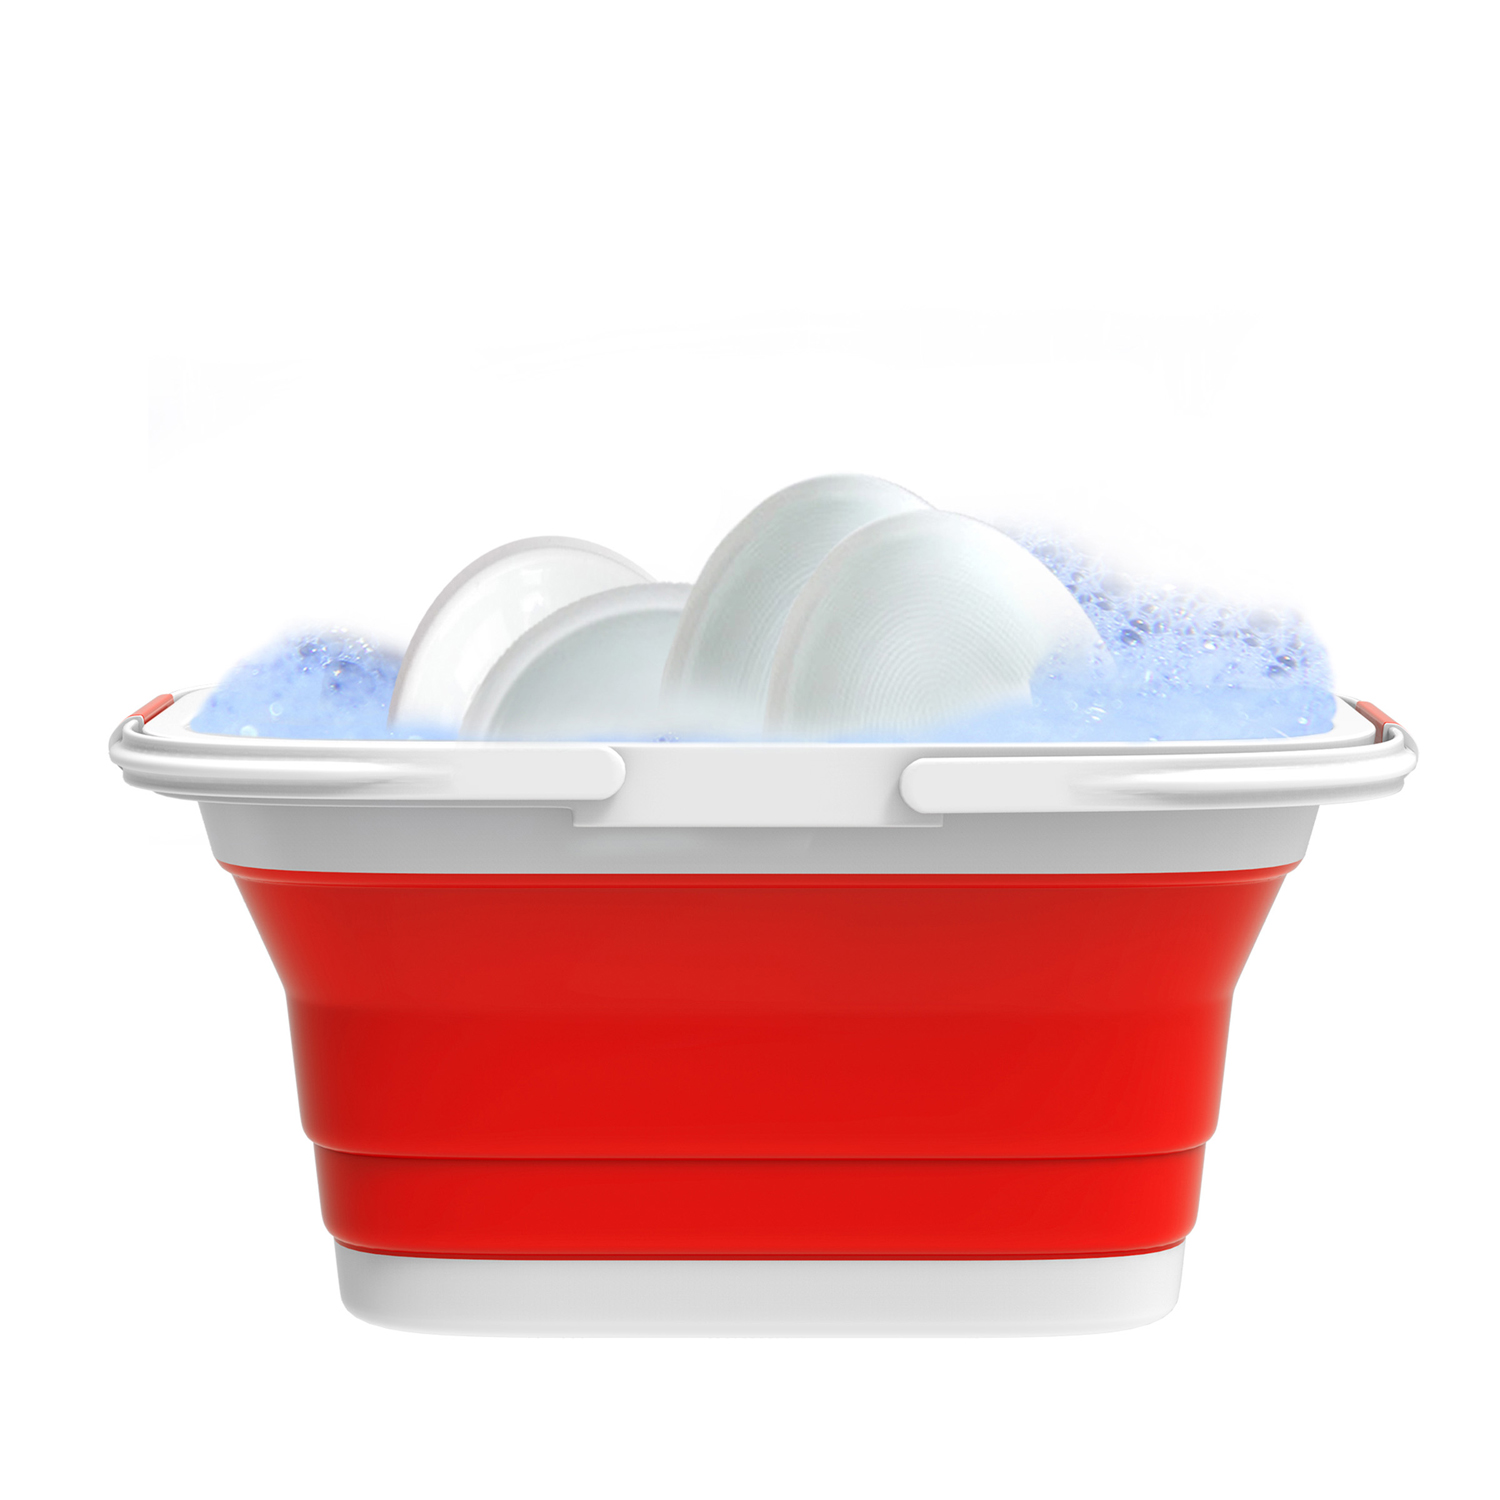 Red Collapsible Basket with Handles